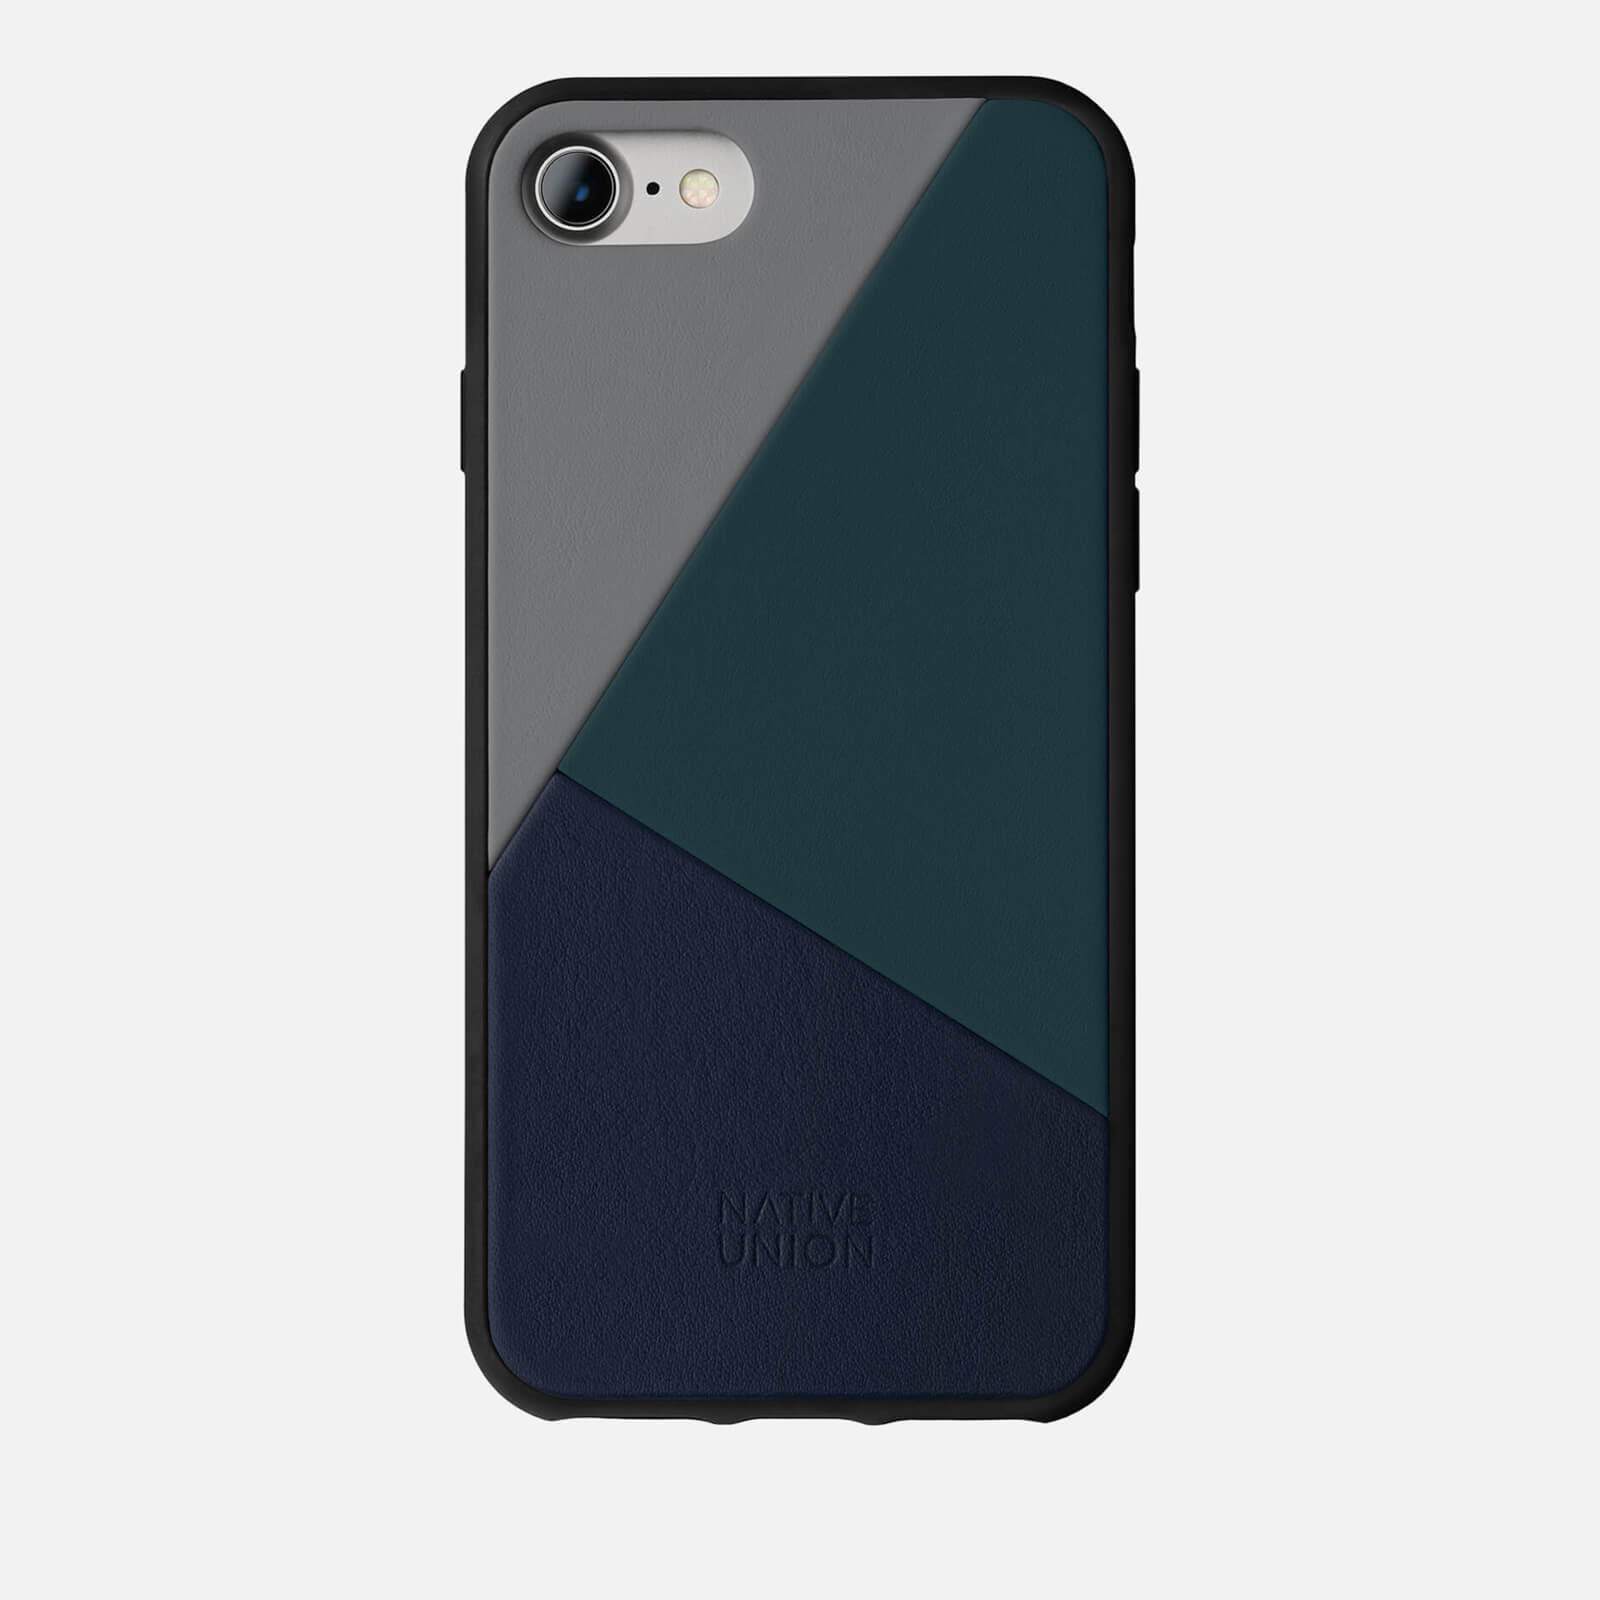 separation shoes 8c01f 98b90 Native Union Clic Marquetry - iPhone 7/8 Case - Petrol Blue